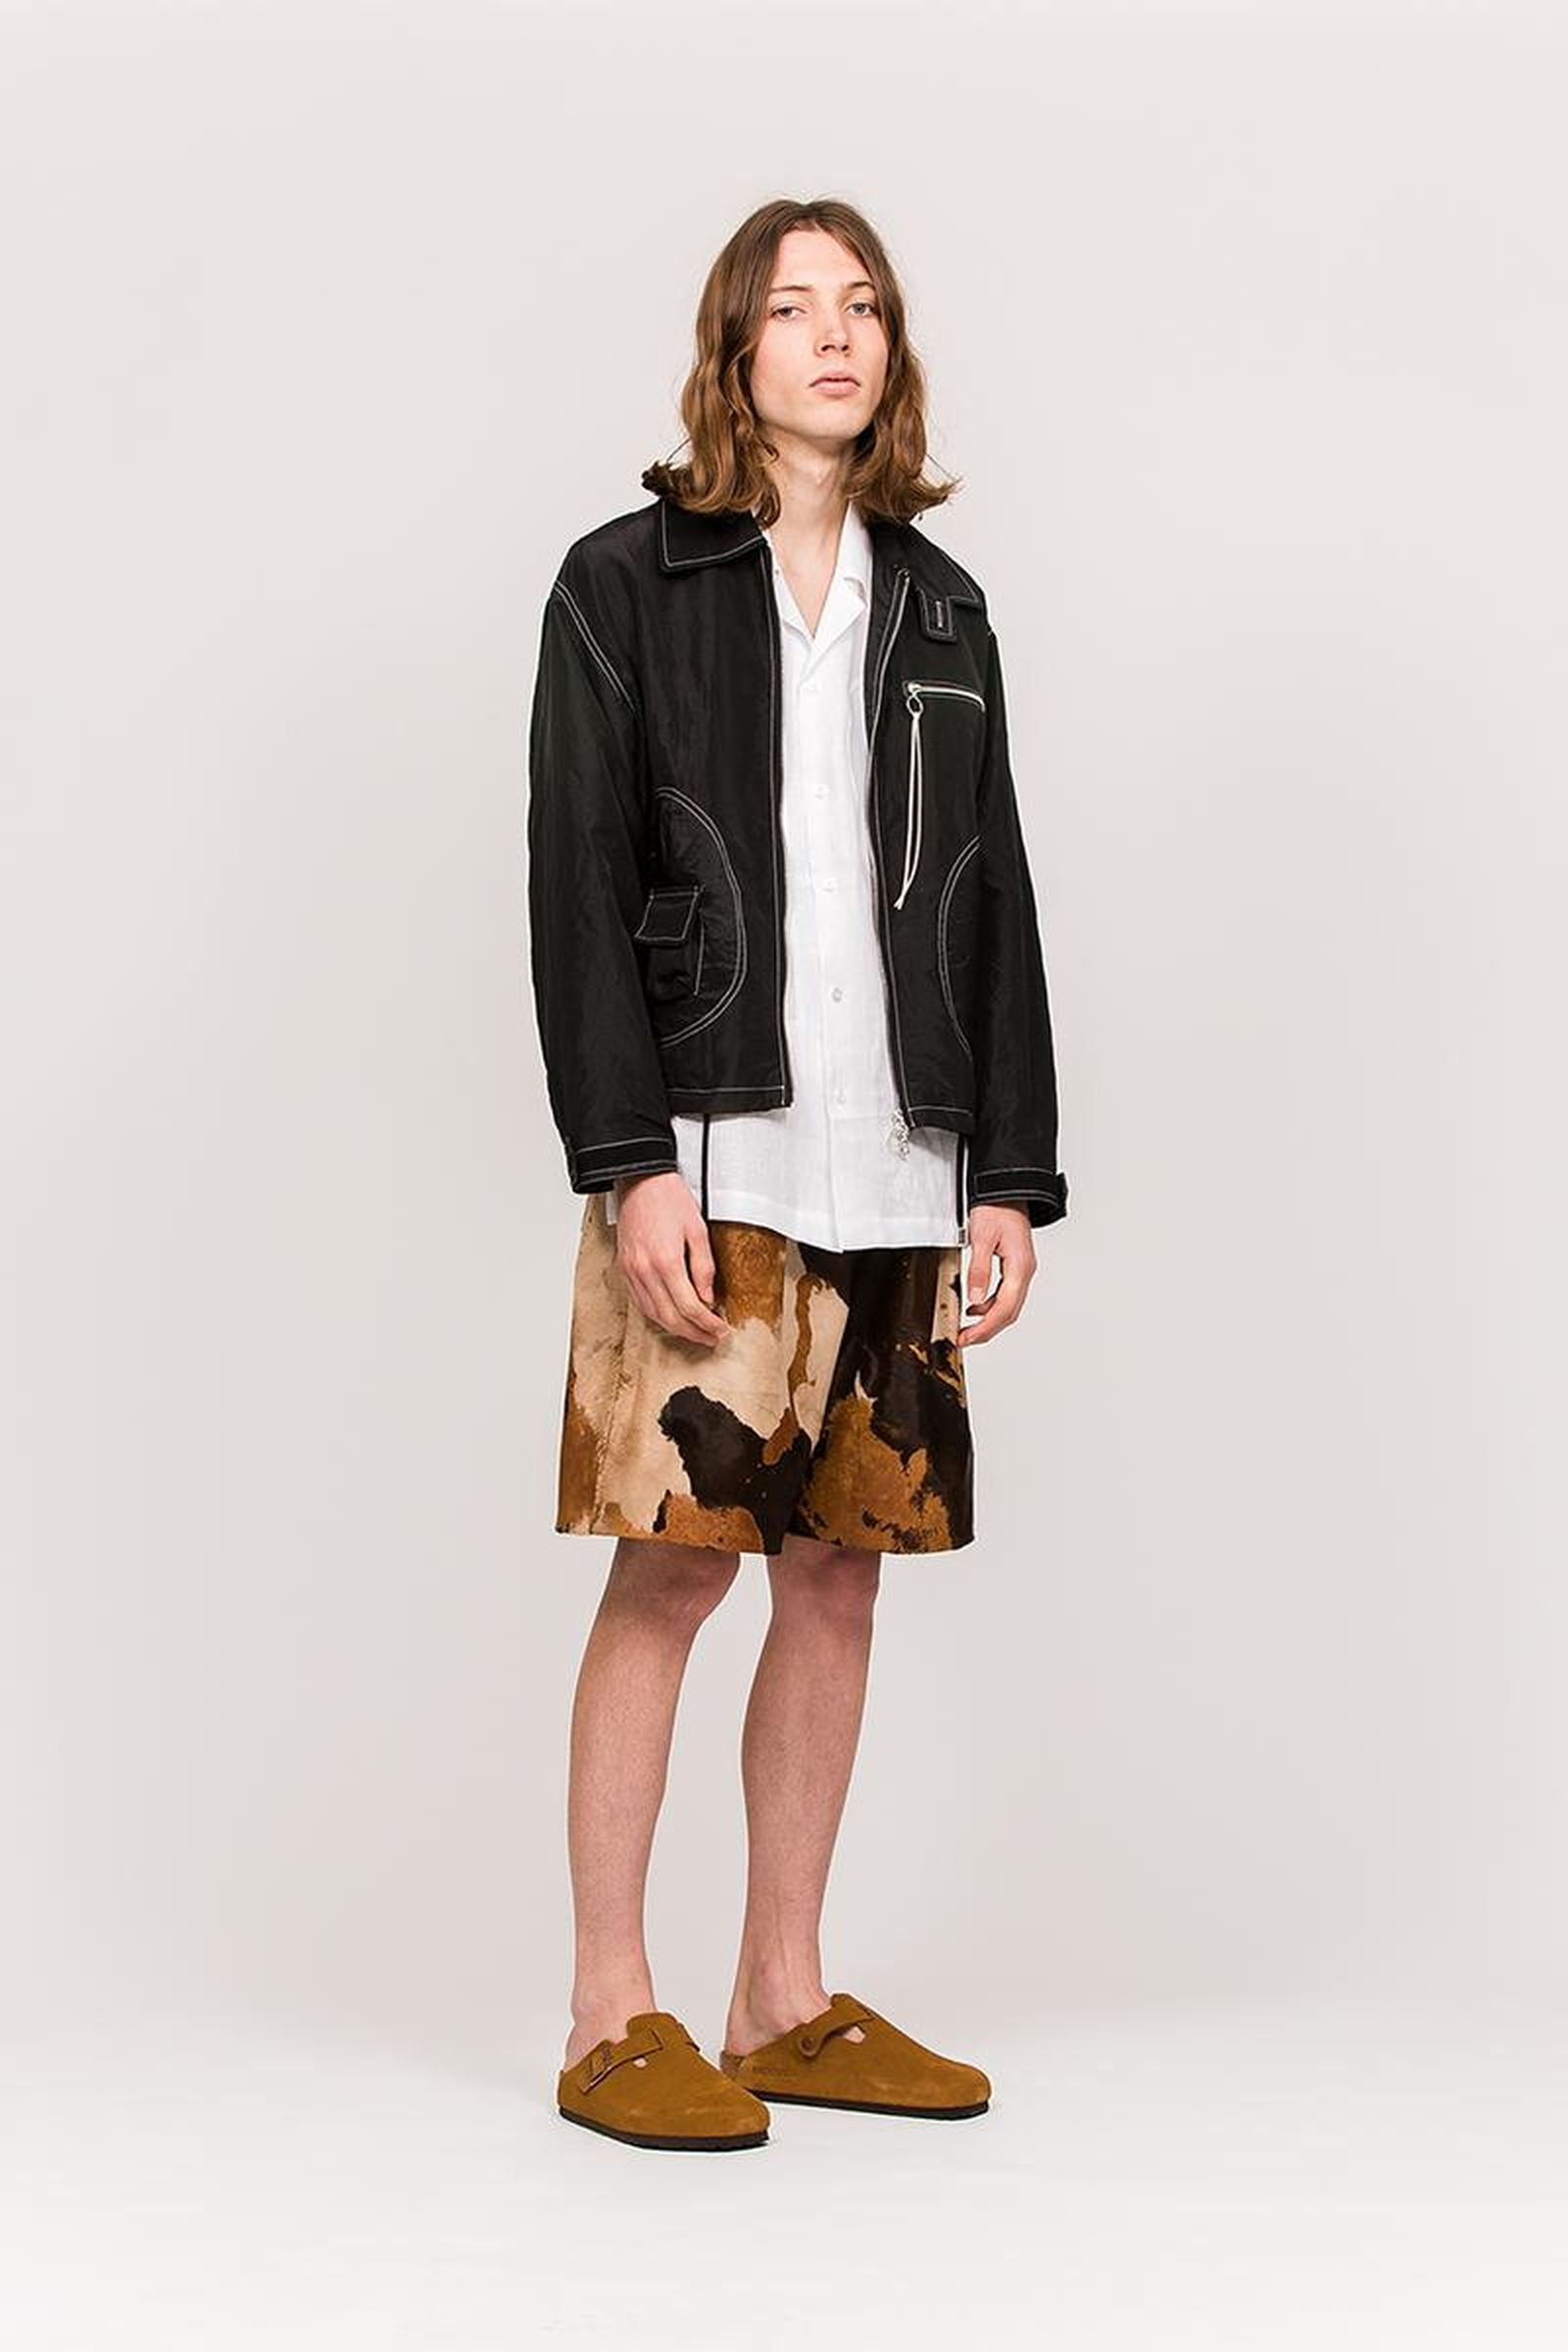 clothsurgeon ss 20 its a lie collection Polly King and Co.